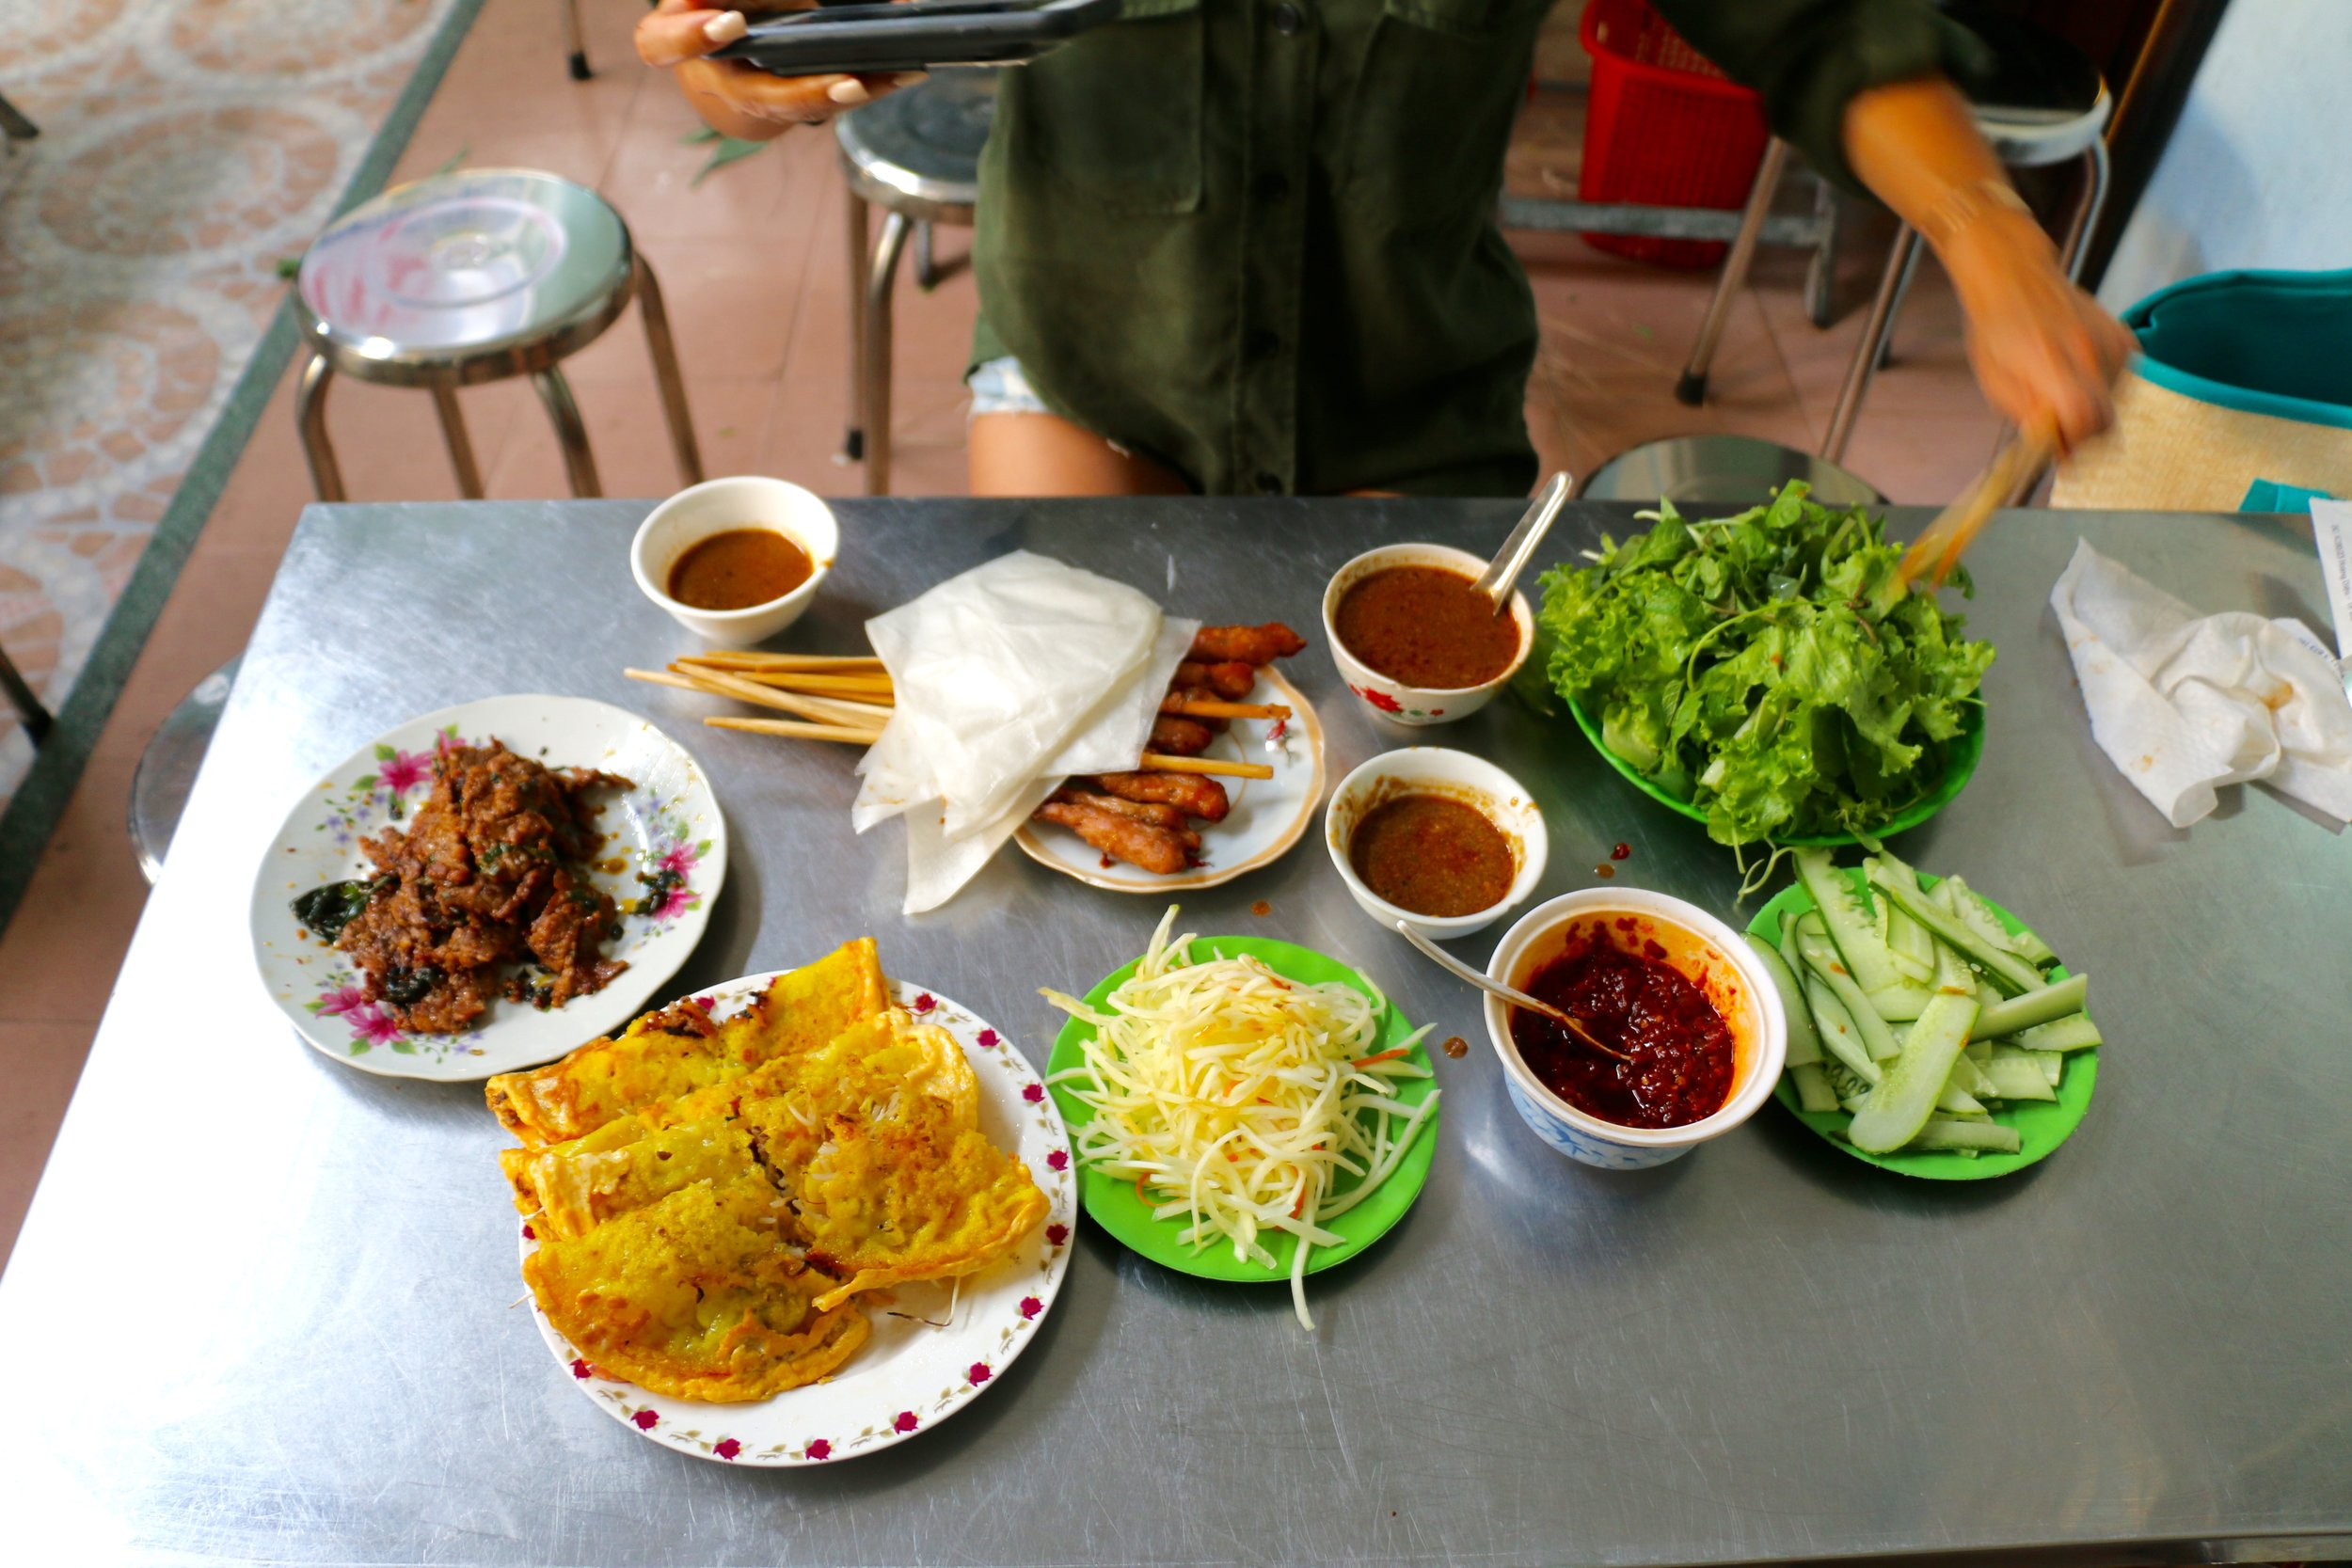 """There really isn't a menu here. You walk in expecting Bahn Xeo (Savory Turmeric Crepes) paired with the """"works."""" There's fresh rice paper skin, crispy crepes, fragrant grilled meats, fresh herbs, hot sauce, dipping sauces...your senses come alive here!"""